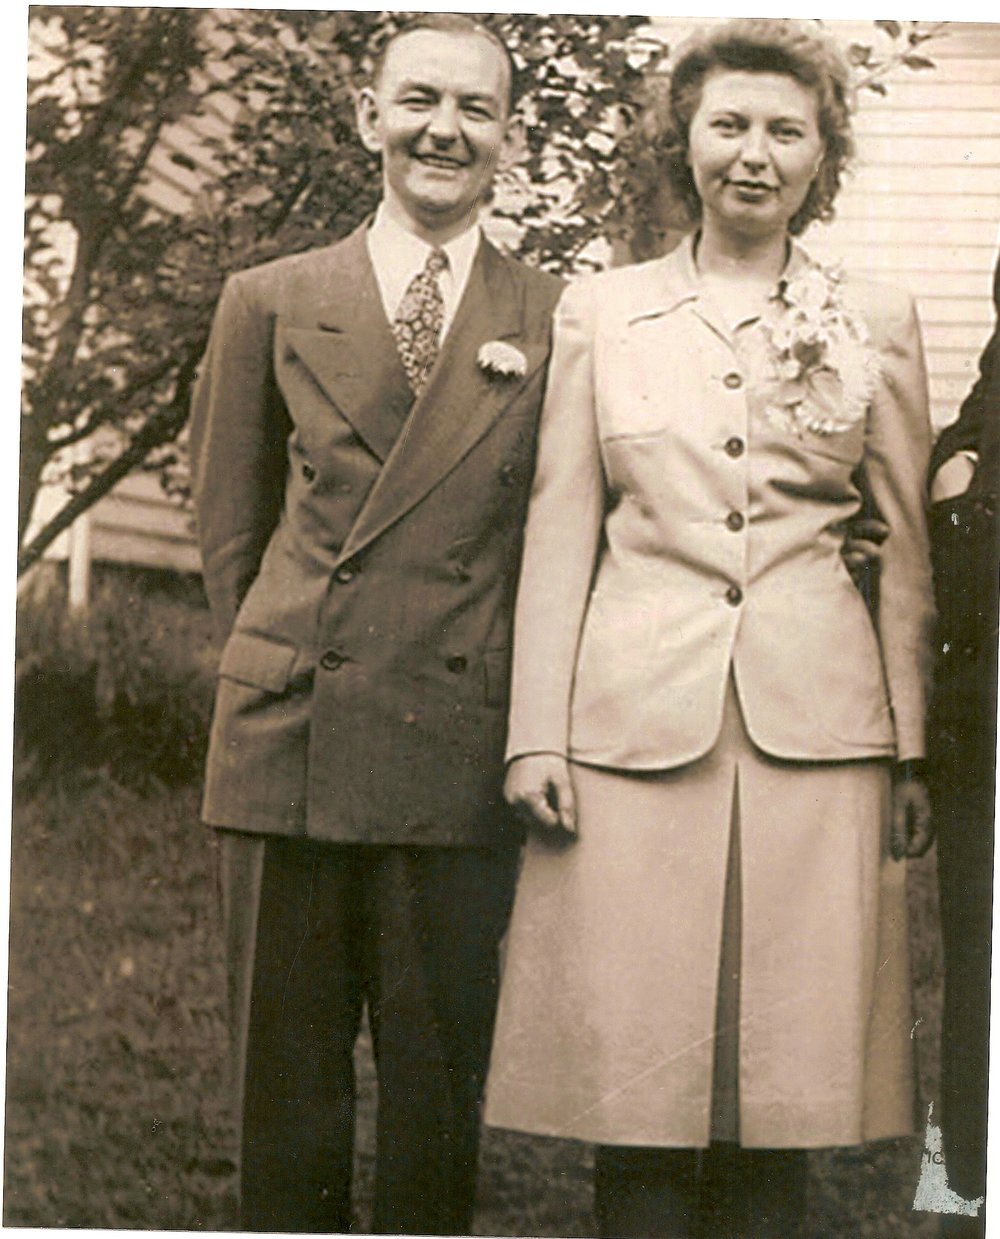 Alvin and Mary Fischesser.  Alvin, was a meat cutter and part owner of Macke's I.G.A. store on Glenway Ave near Ferguson Rd.